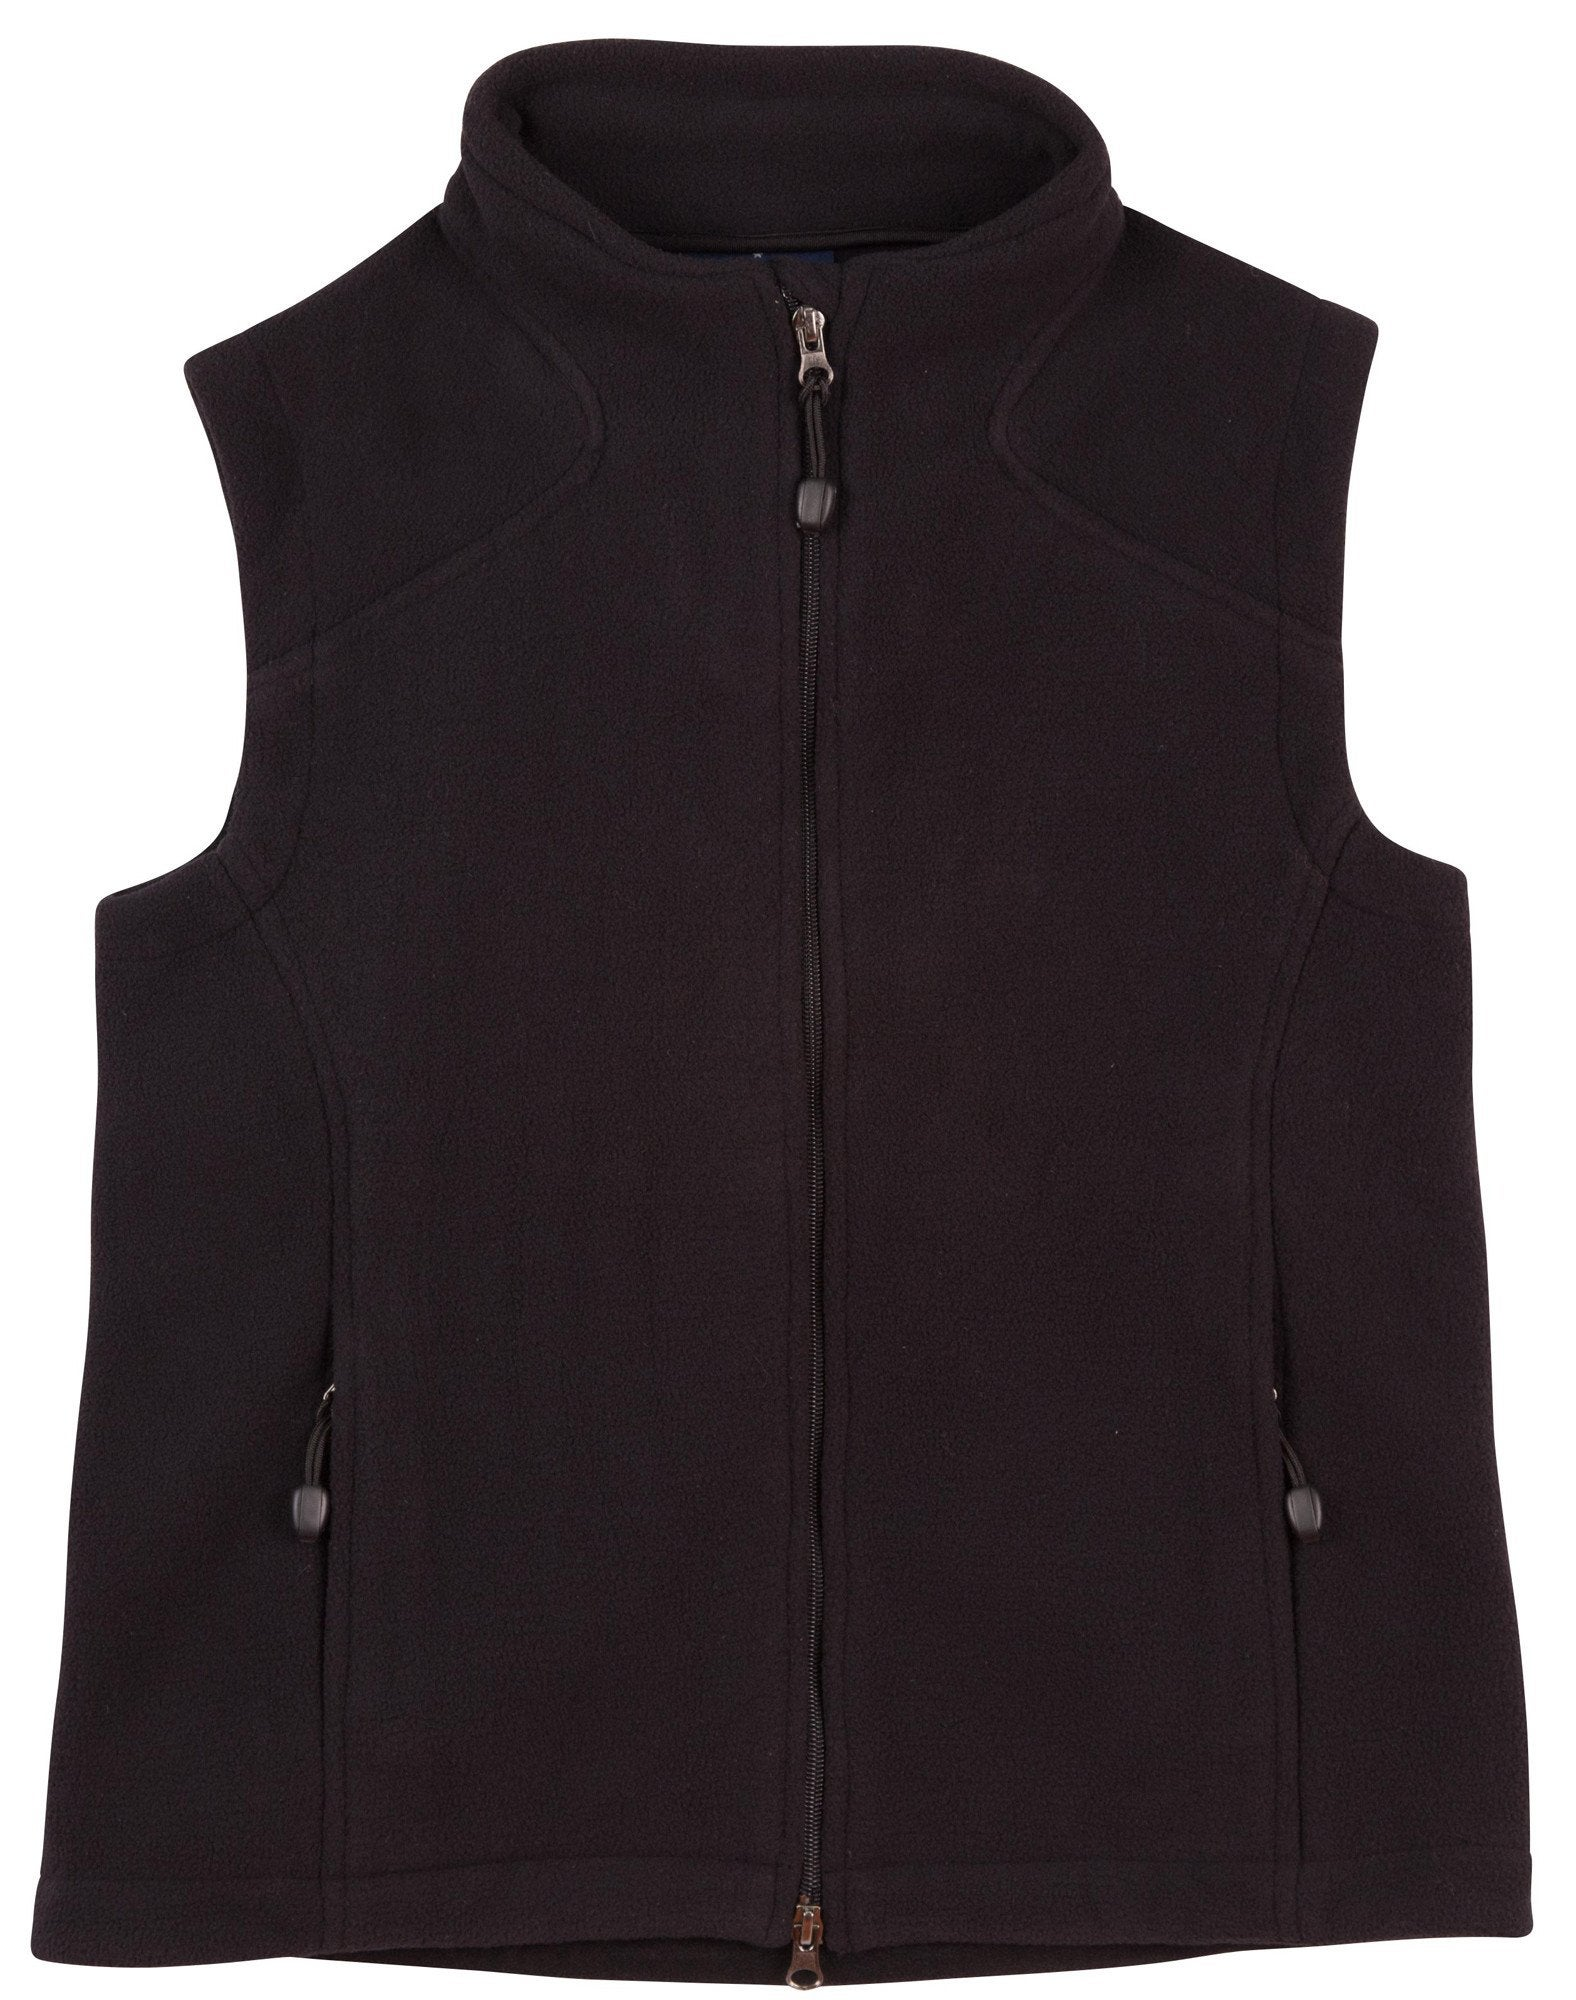 Ladies' Diamond Polar Fleece Vest